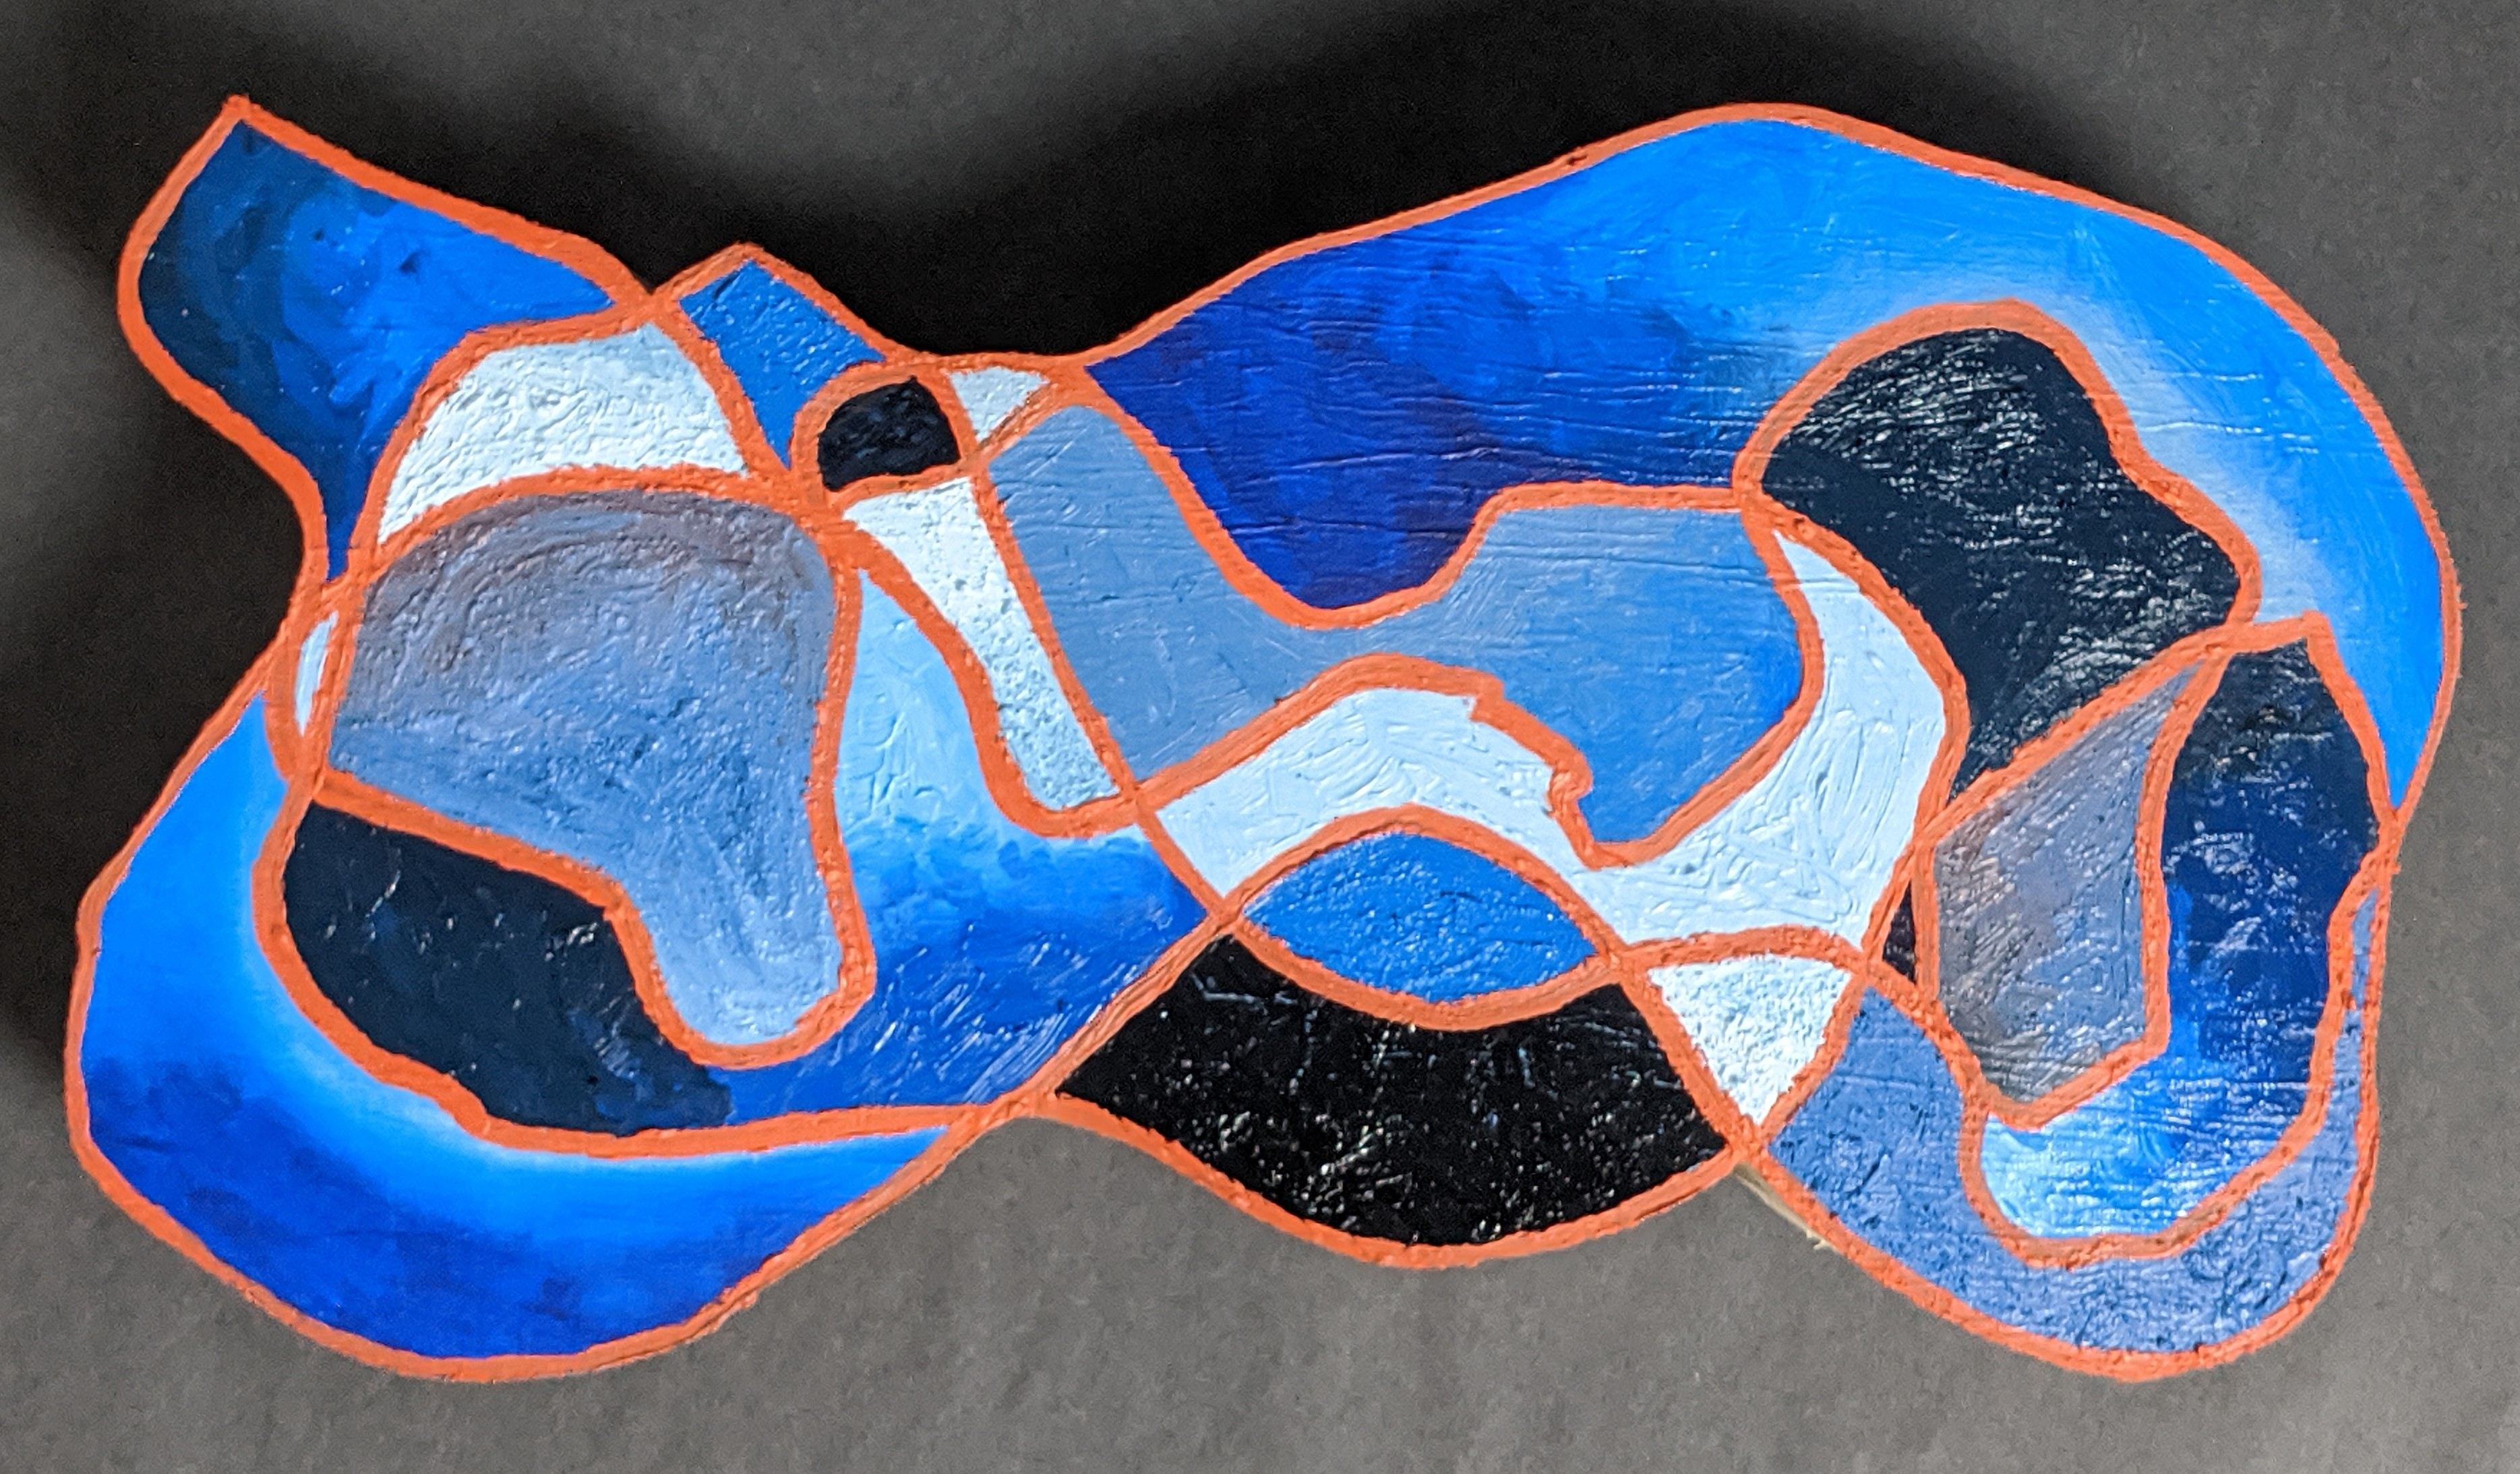 """""""Our Ordinary Thought is Abstract."""" Frank Korb, Oil, sand, Roll-a-Tex, Collage, and Canvas on Plywood, 10"""" x 18.5"""" x 2.5"""", 2020, $240""""Our Ordinary Thought is Abstract."""" Frank Korb, Oil, sand, Roll-a-Tex, Collage, and Canvas on Plywood, 2020, $240."""